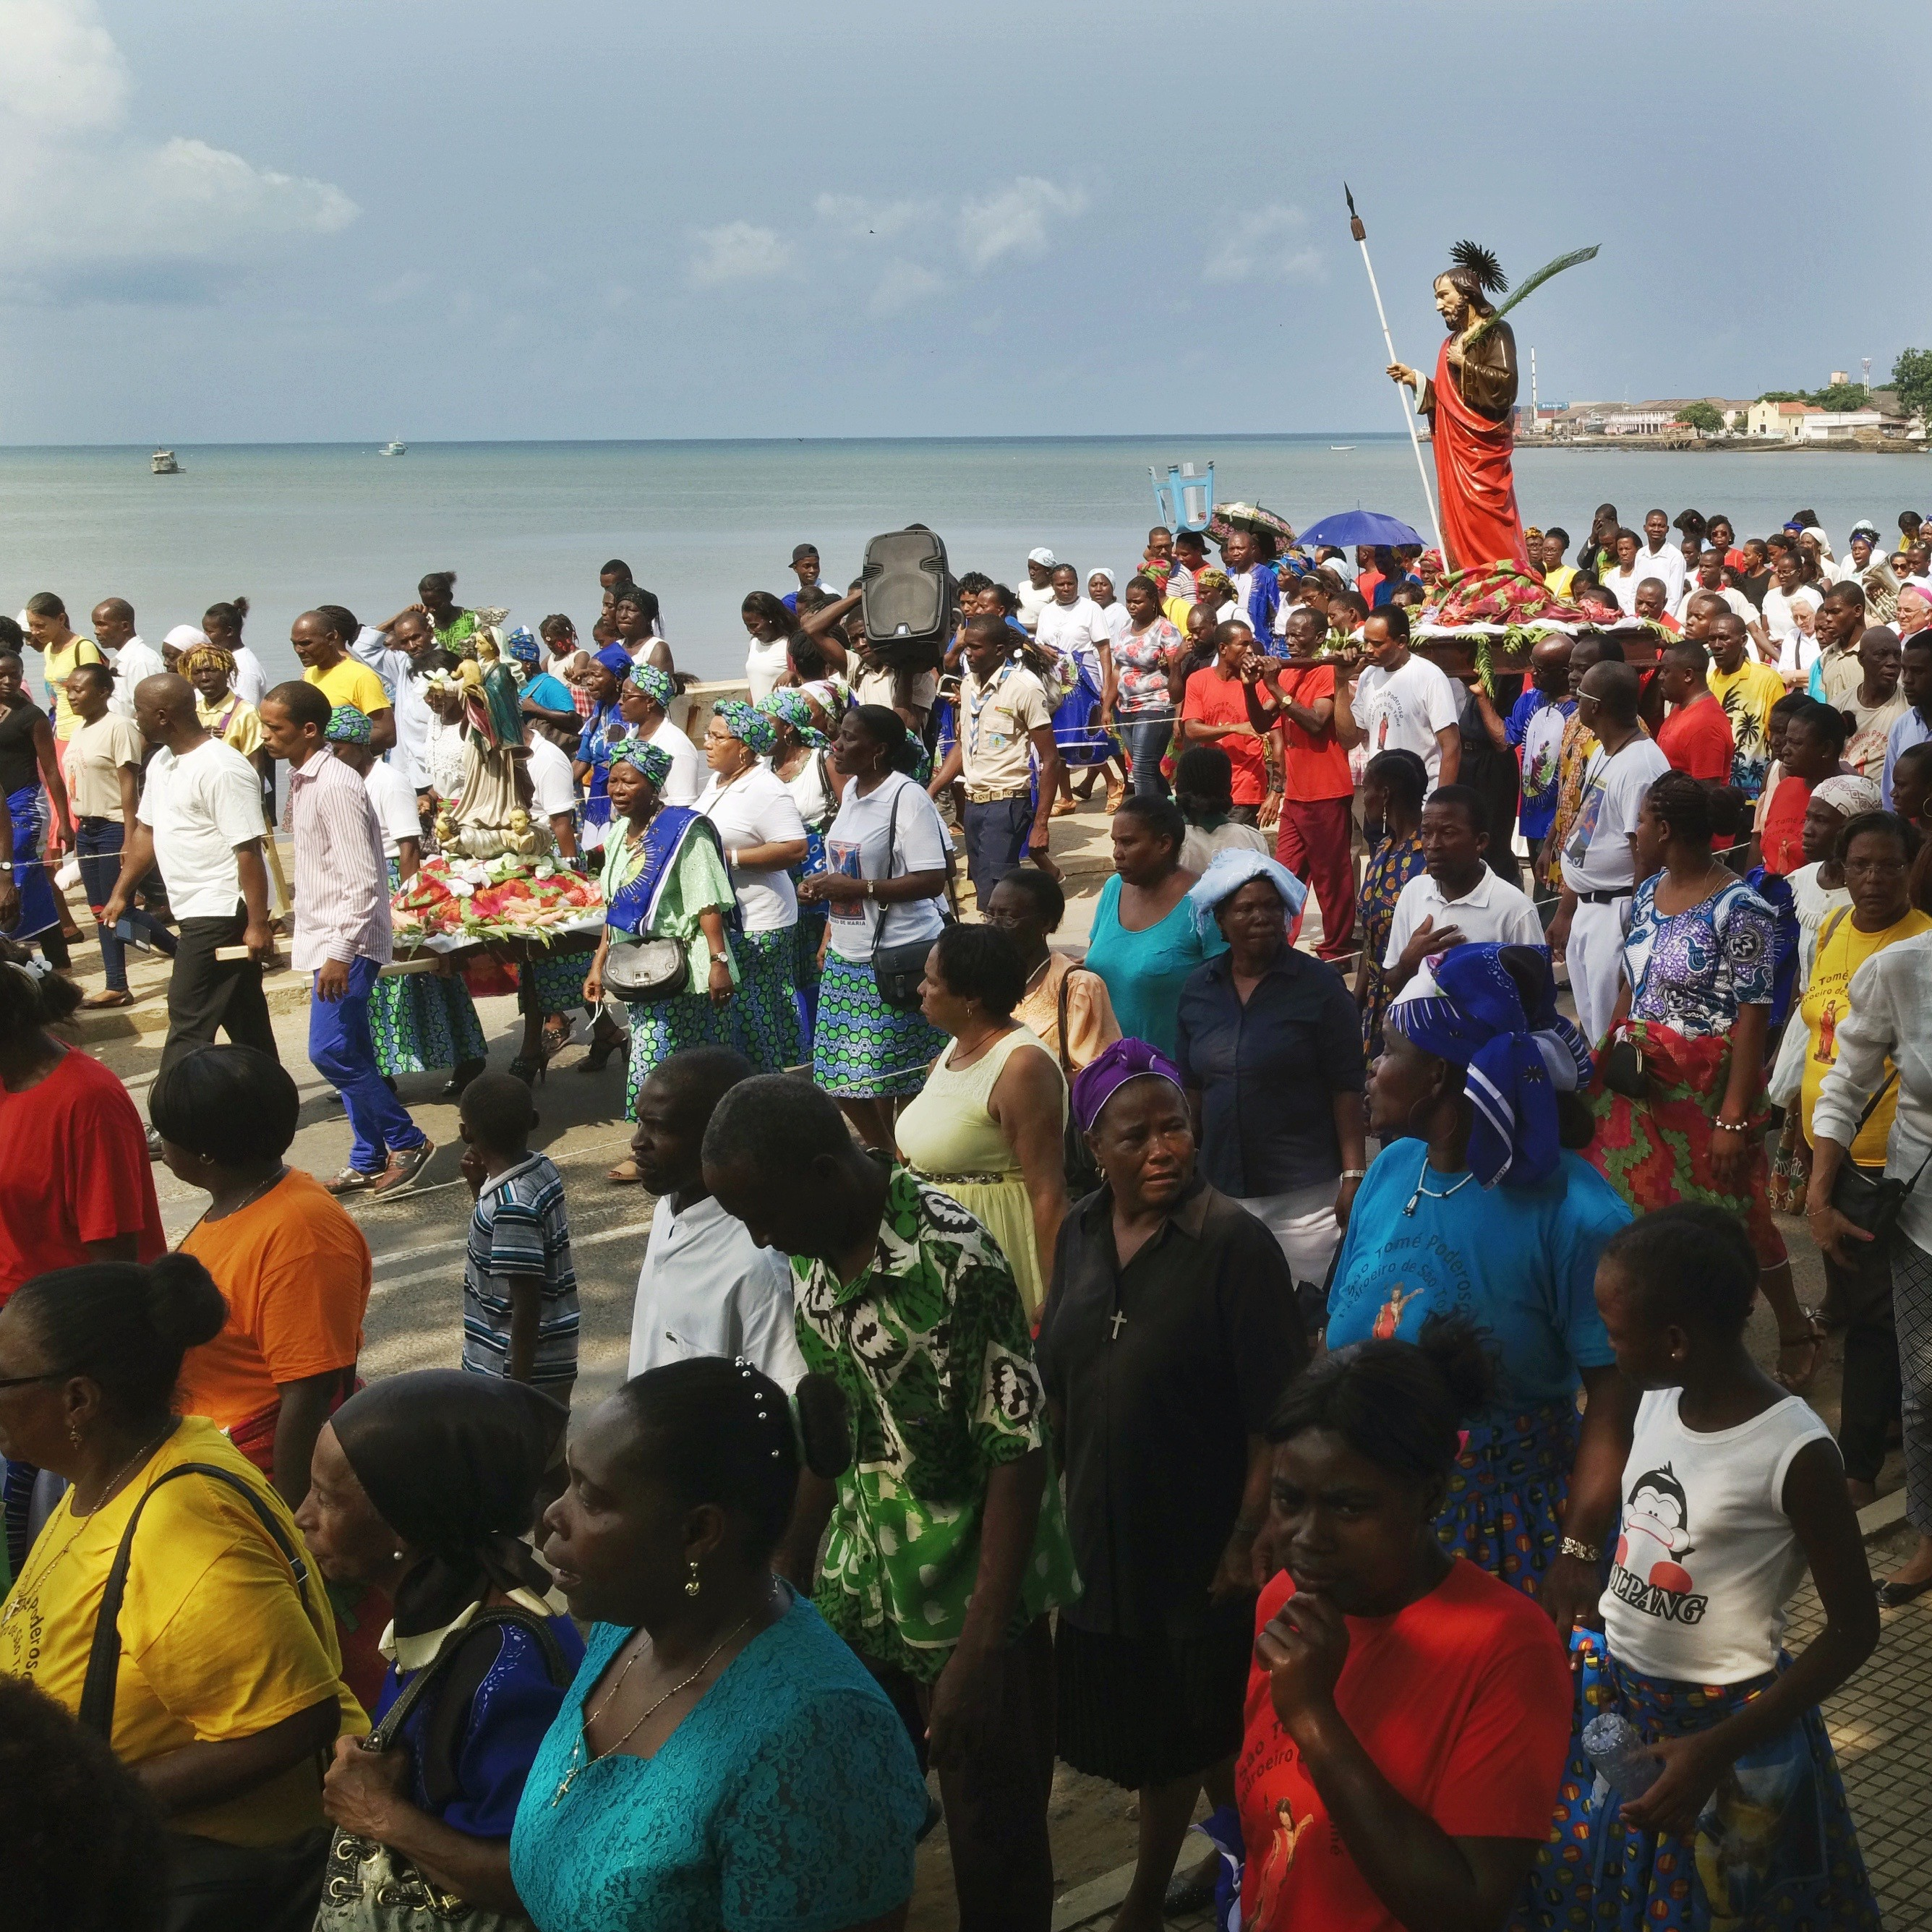 a crowd of people around a statue of st thomas parading on a street in front of the ocean